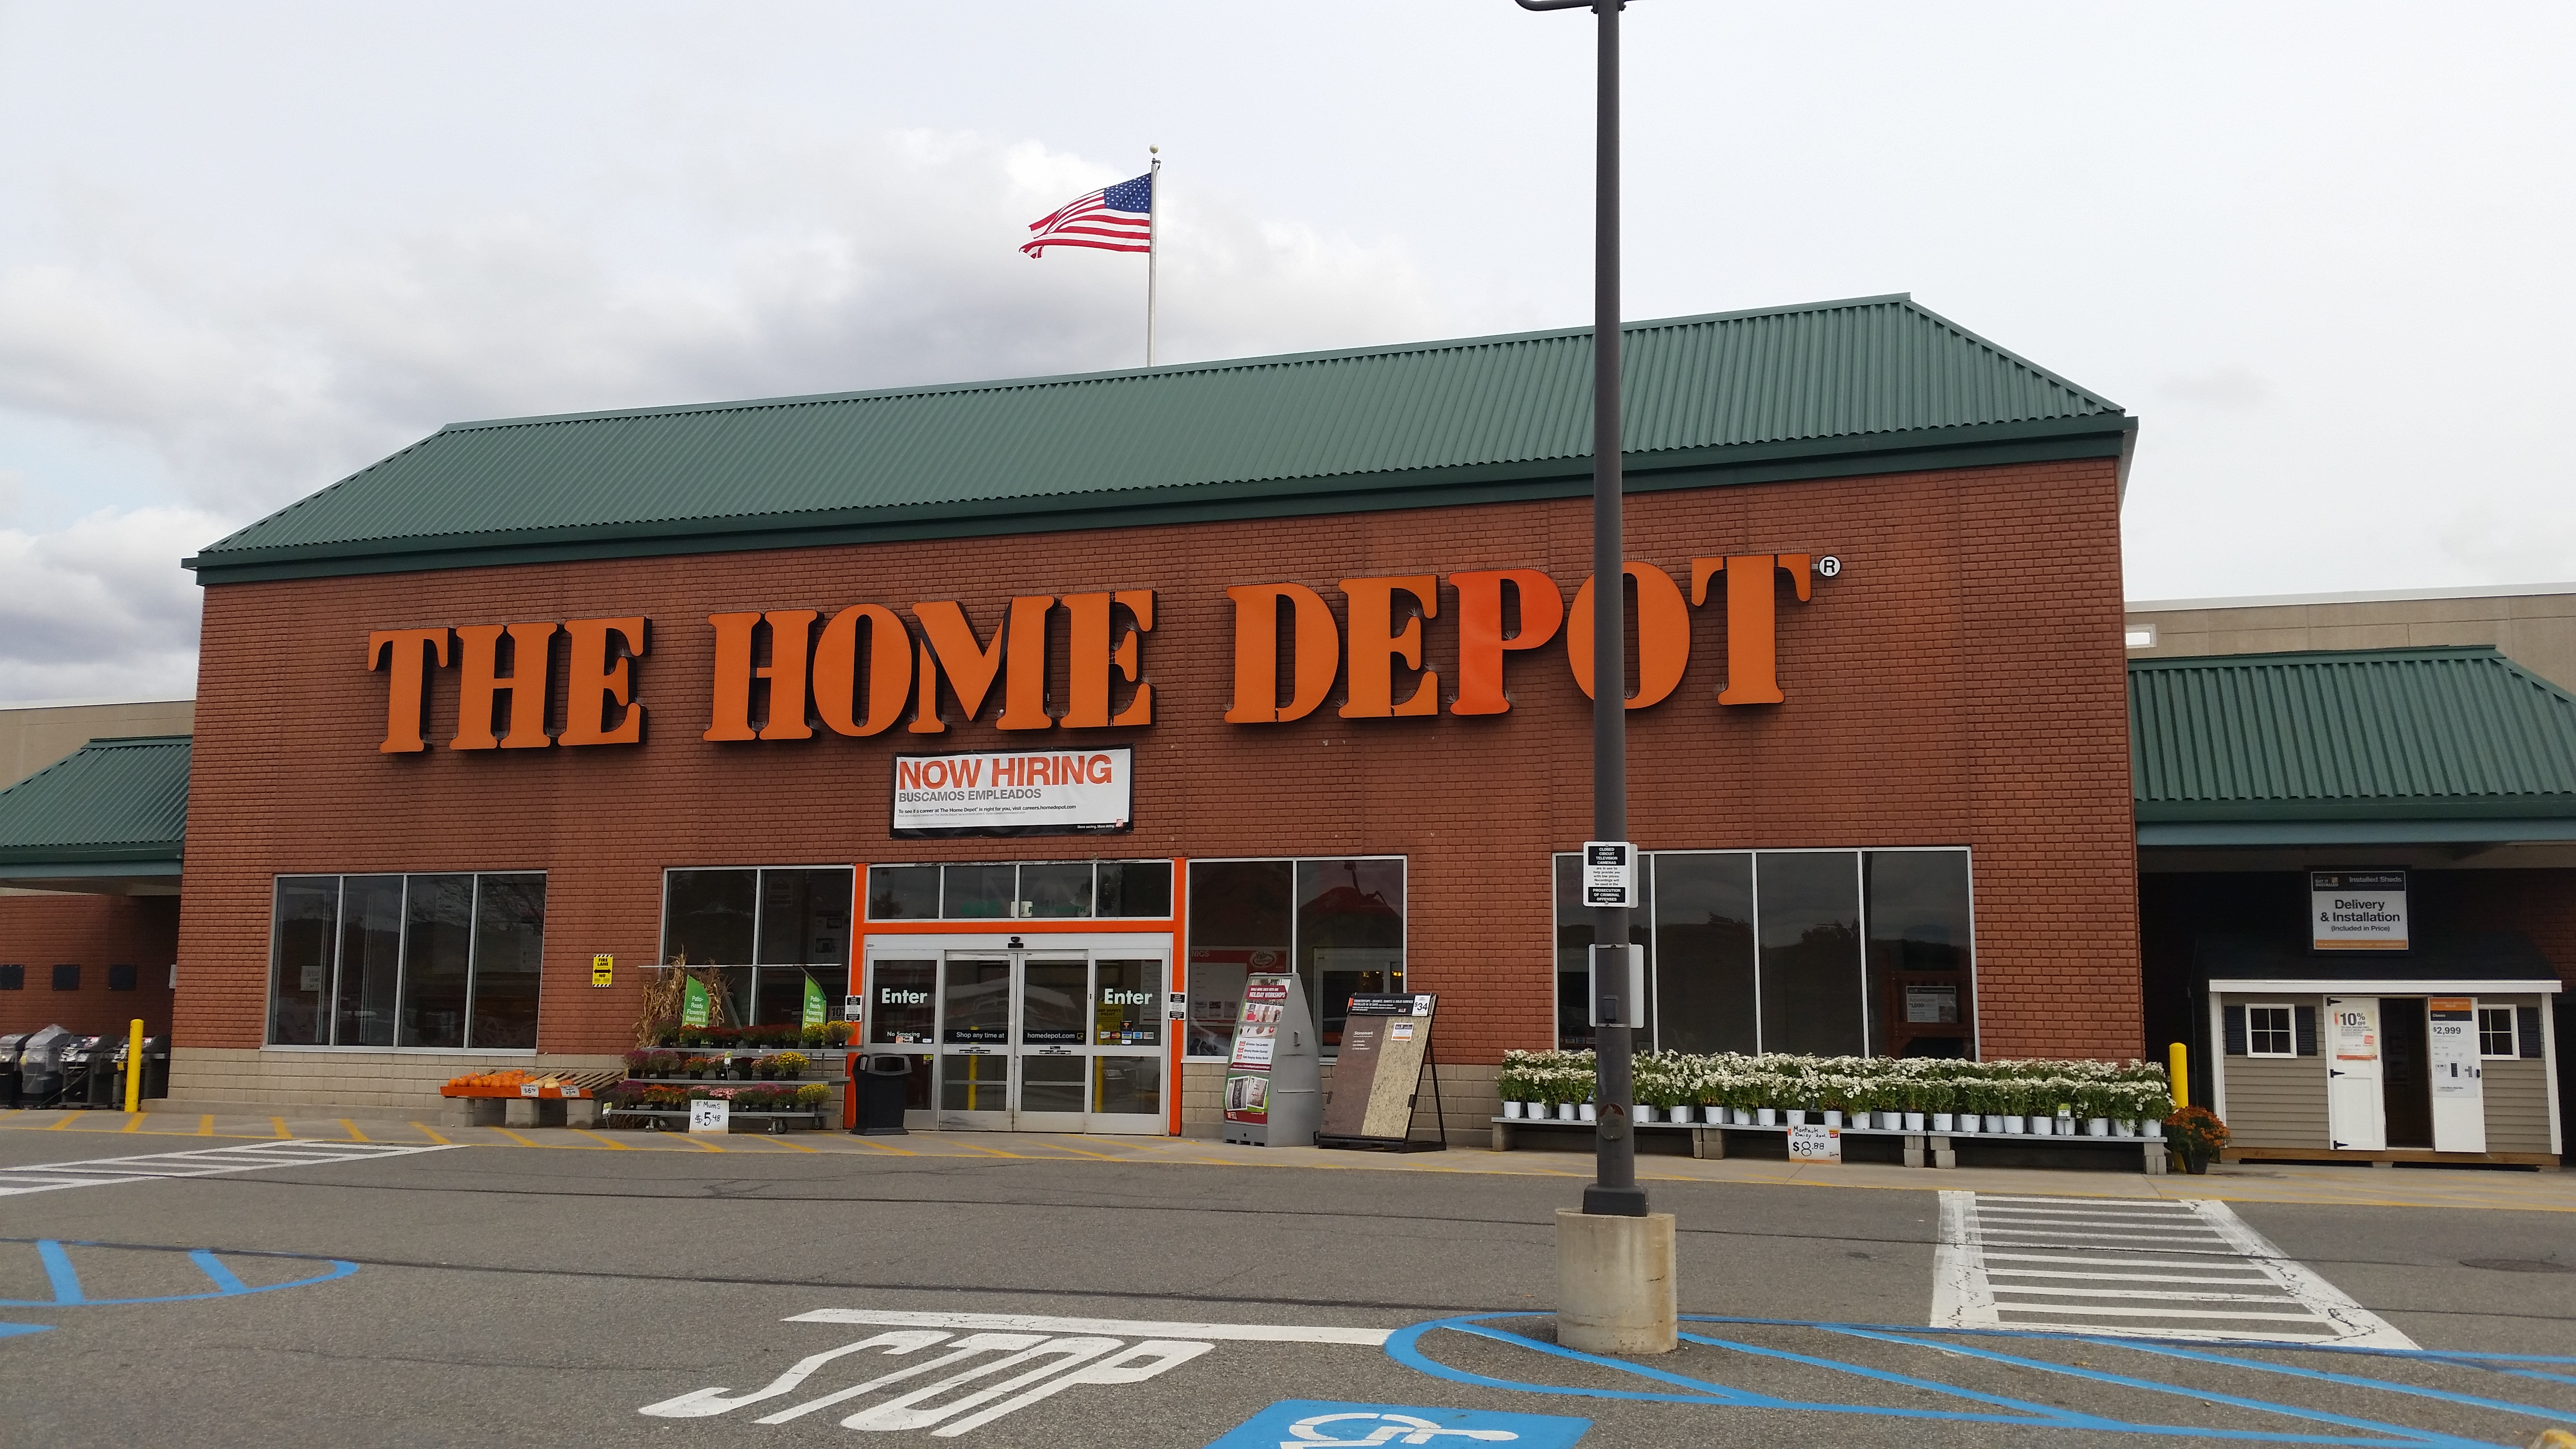 The Home Depot in Mahwah, NJ, photo #11